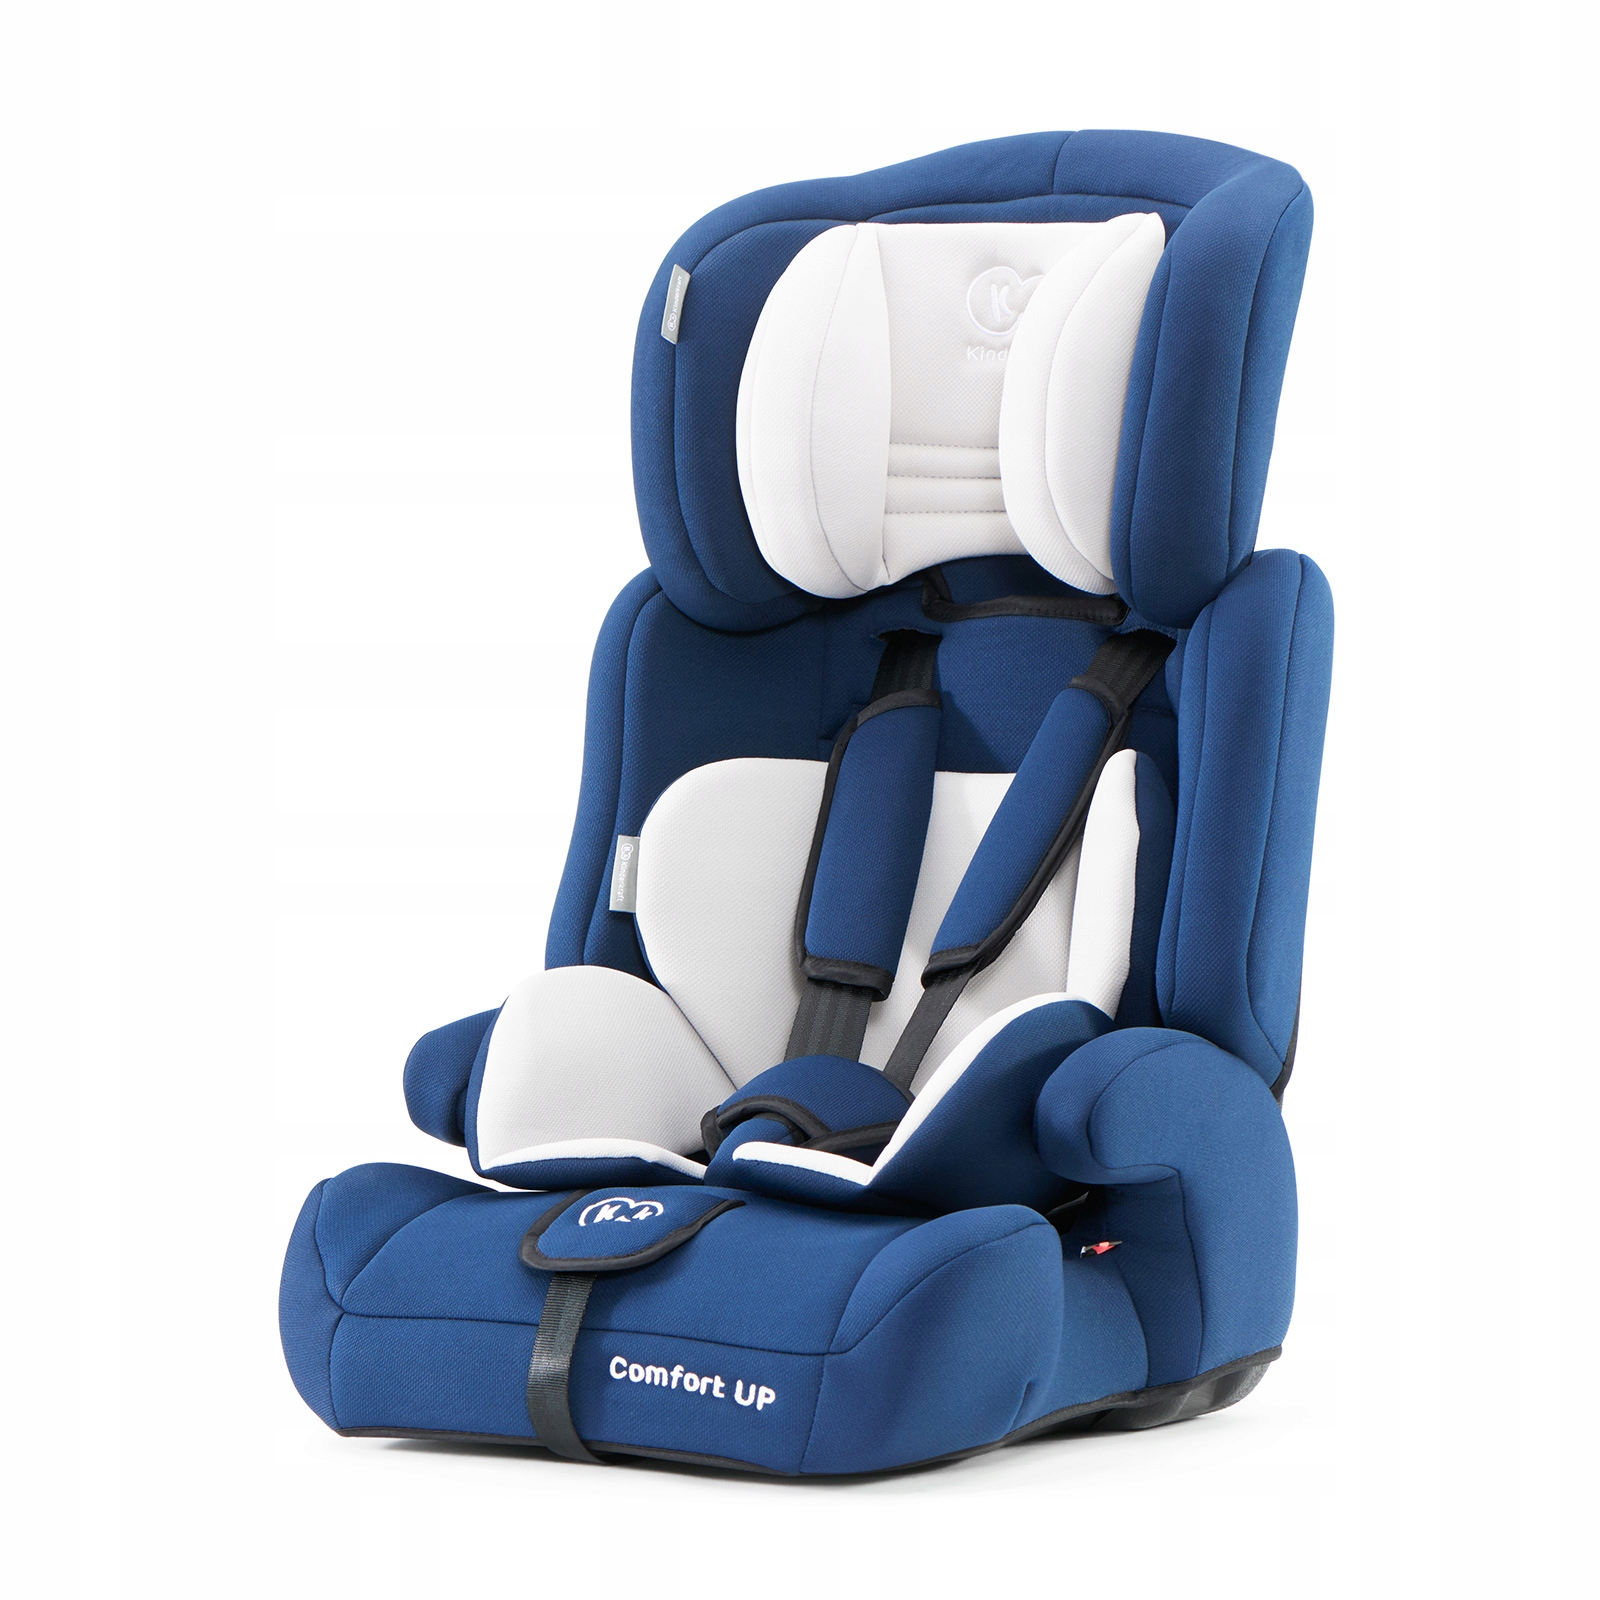 Автокресло 9-36 кг Kinderkraft COMFORT UP